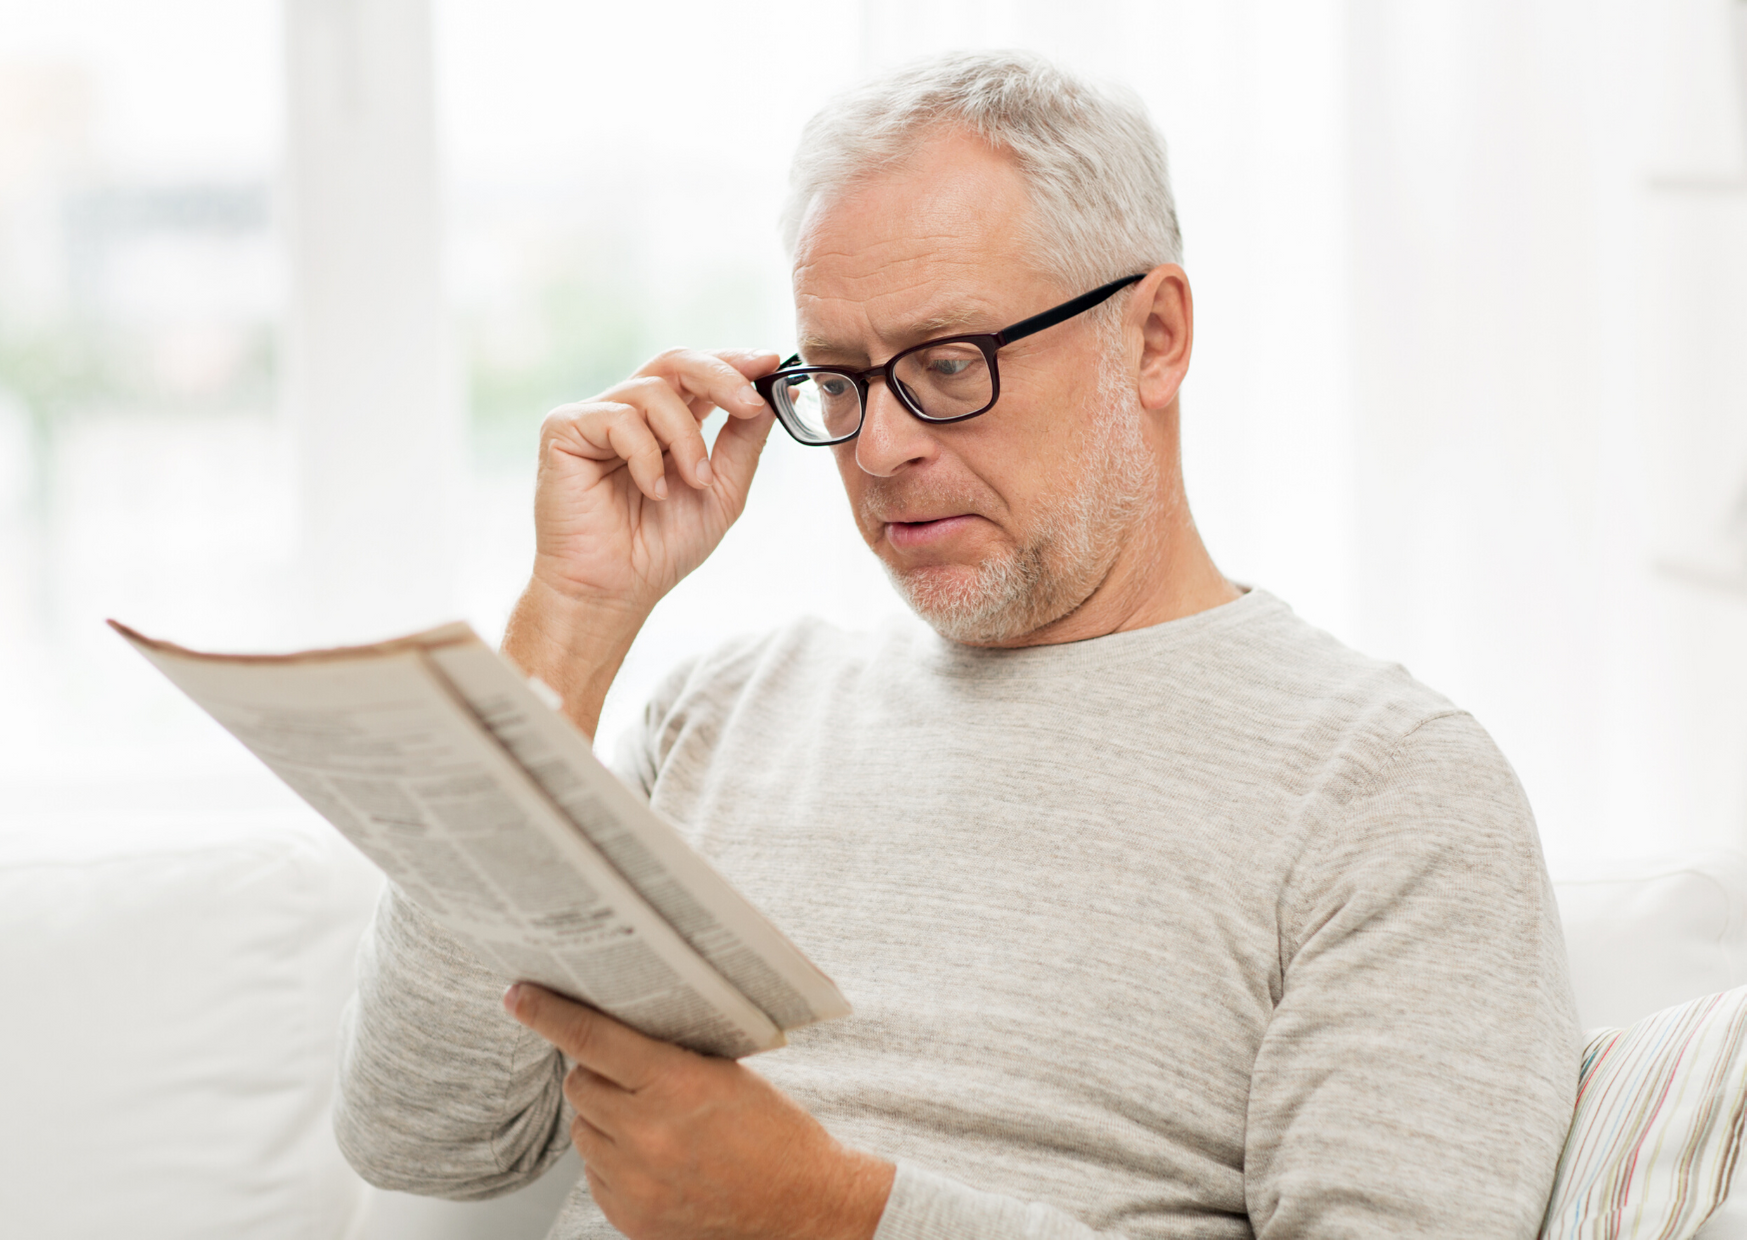 man reading with glasses